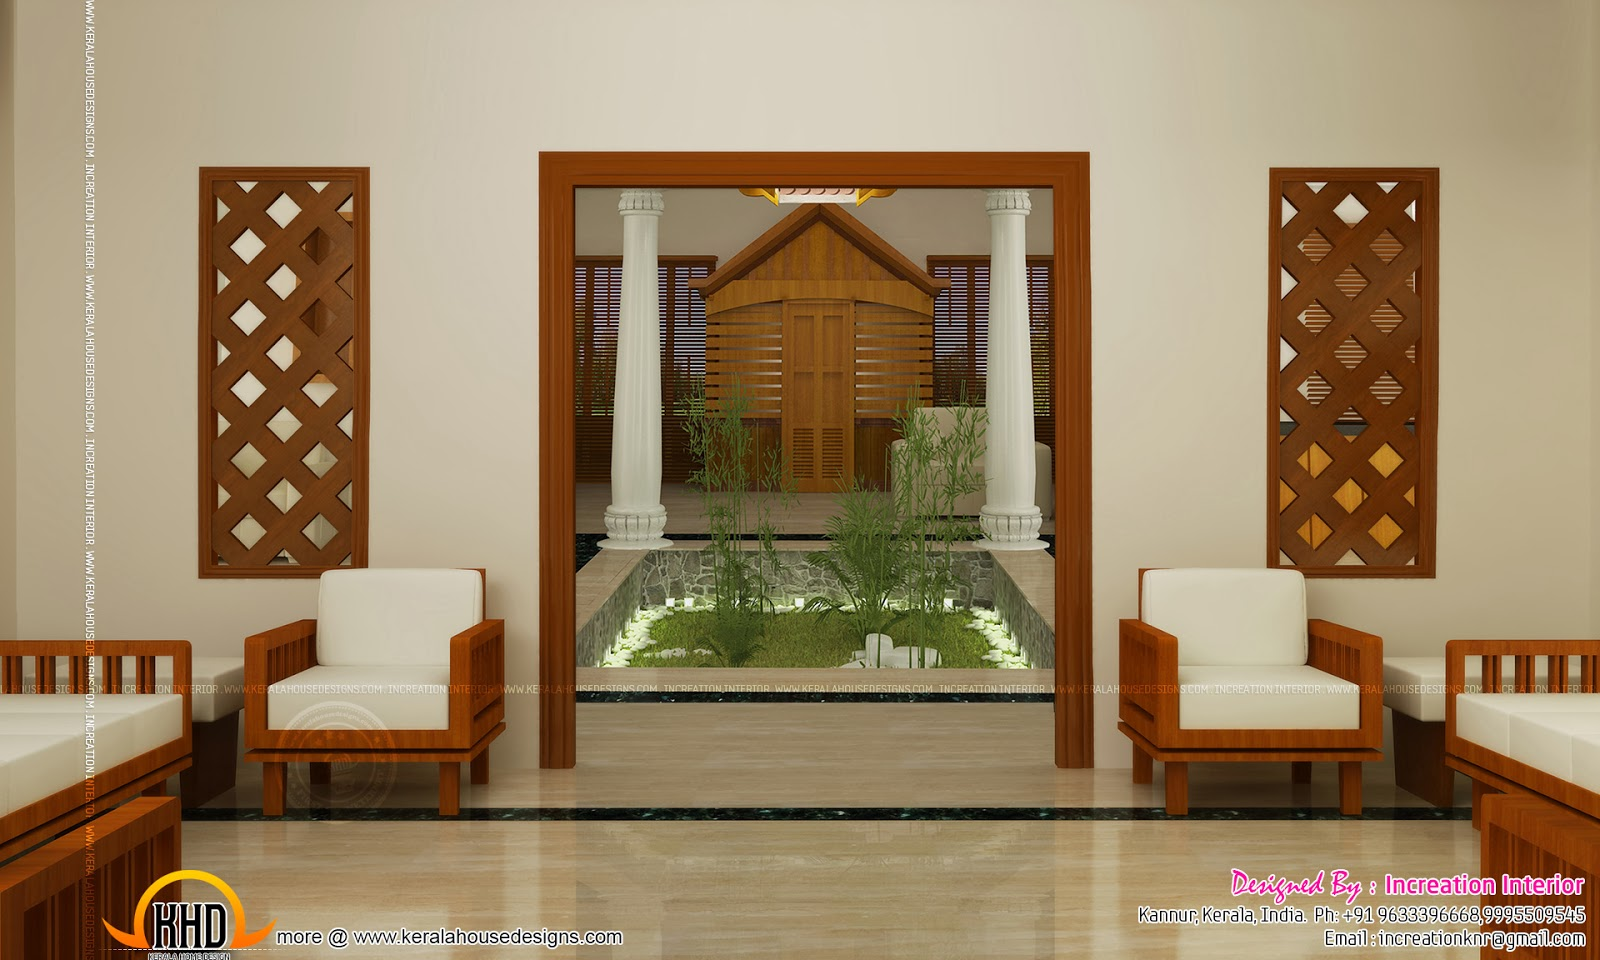 Beautiful home interiors kerala home design and floor plans Low cost interior design for homes in kerala